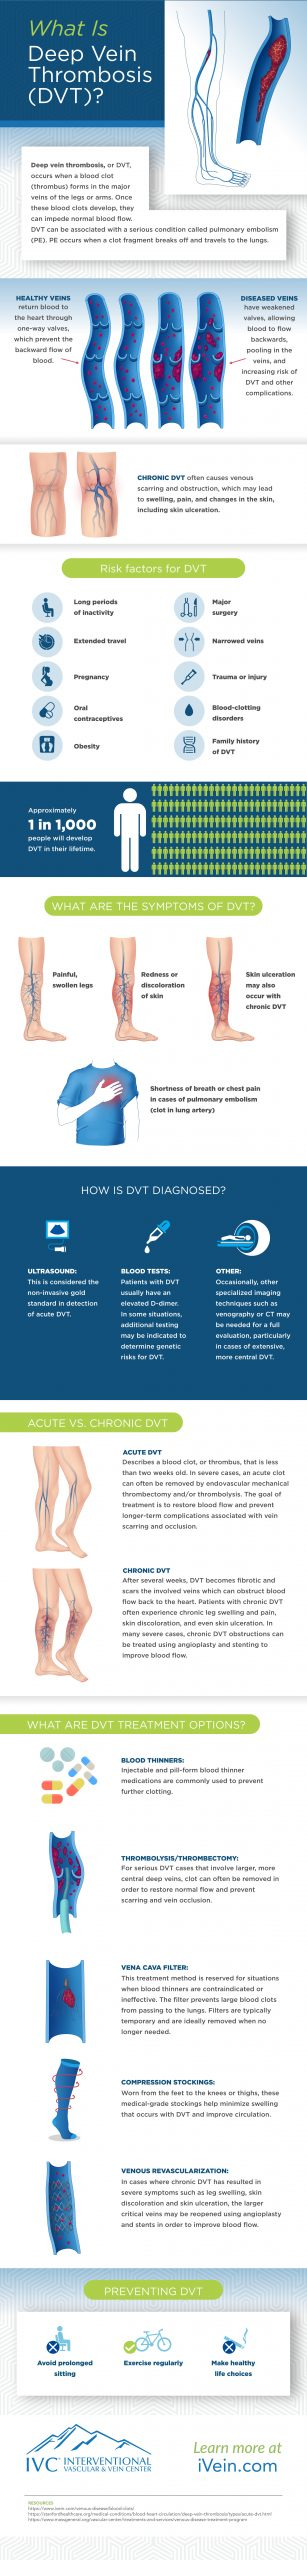 What is deep vein thrombosis infographic